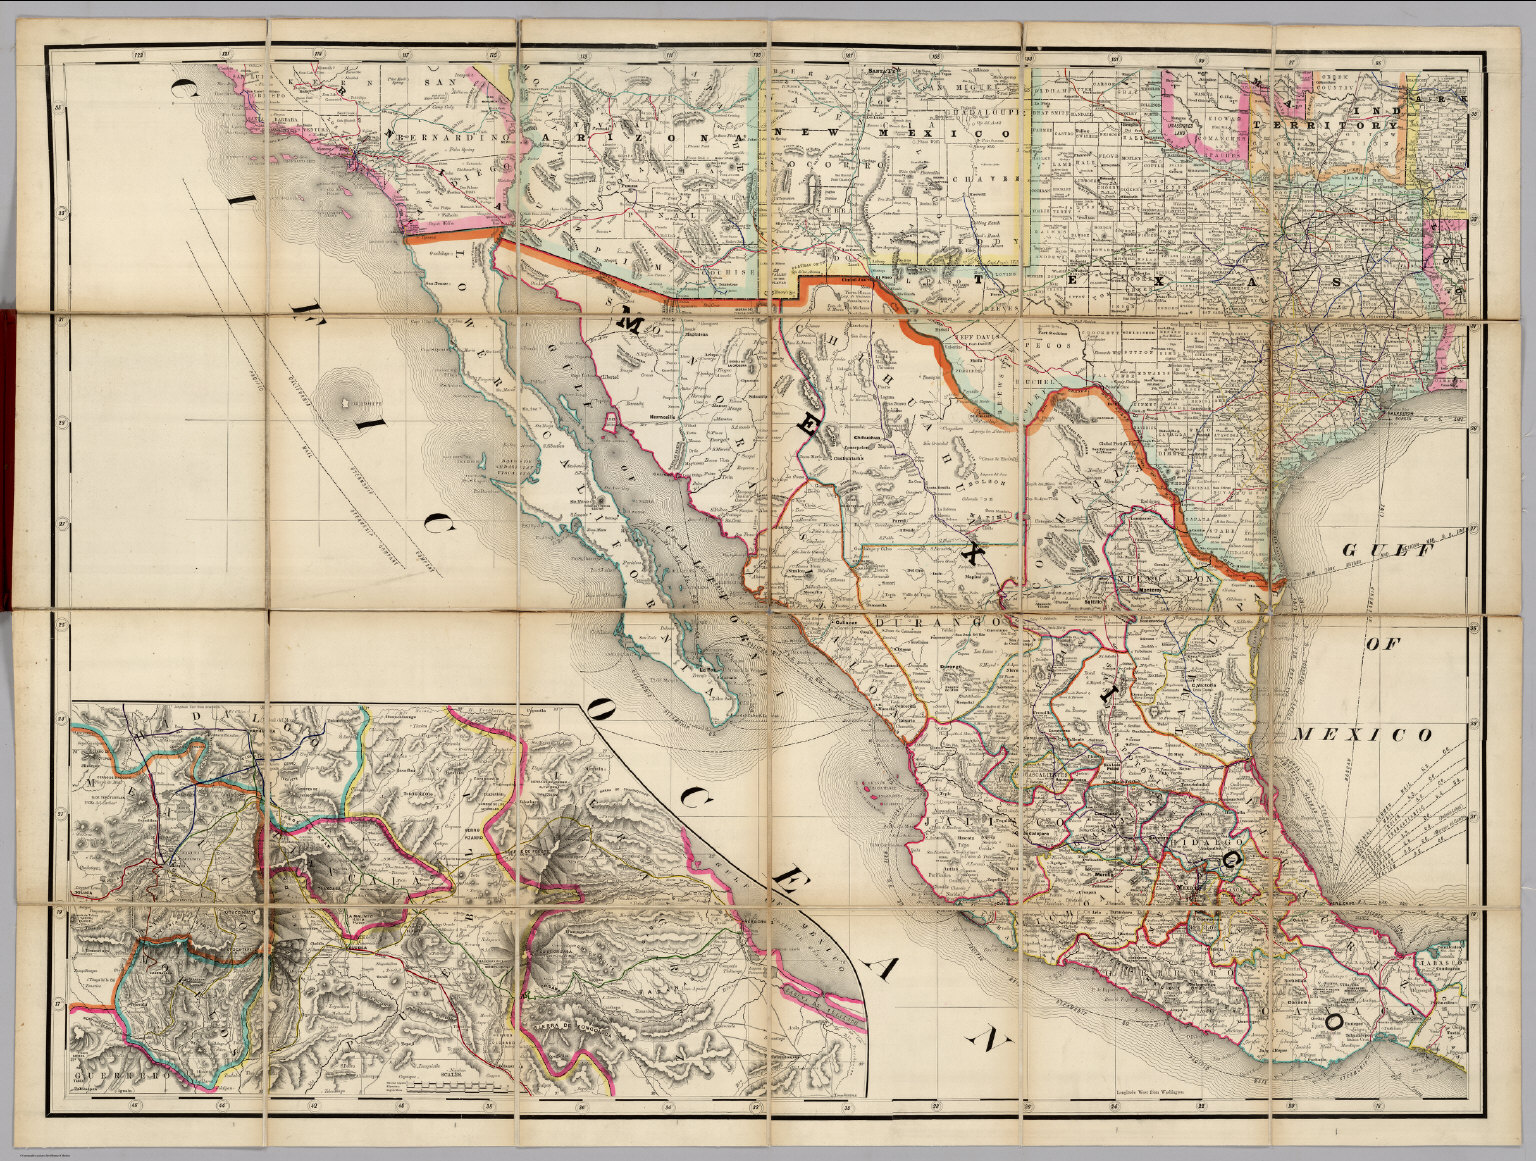 US Southwest Mexico Railroad Map Of The United States David - Us southwest map